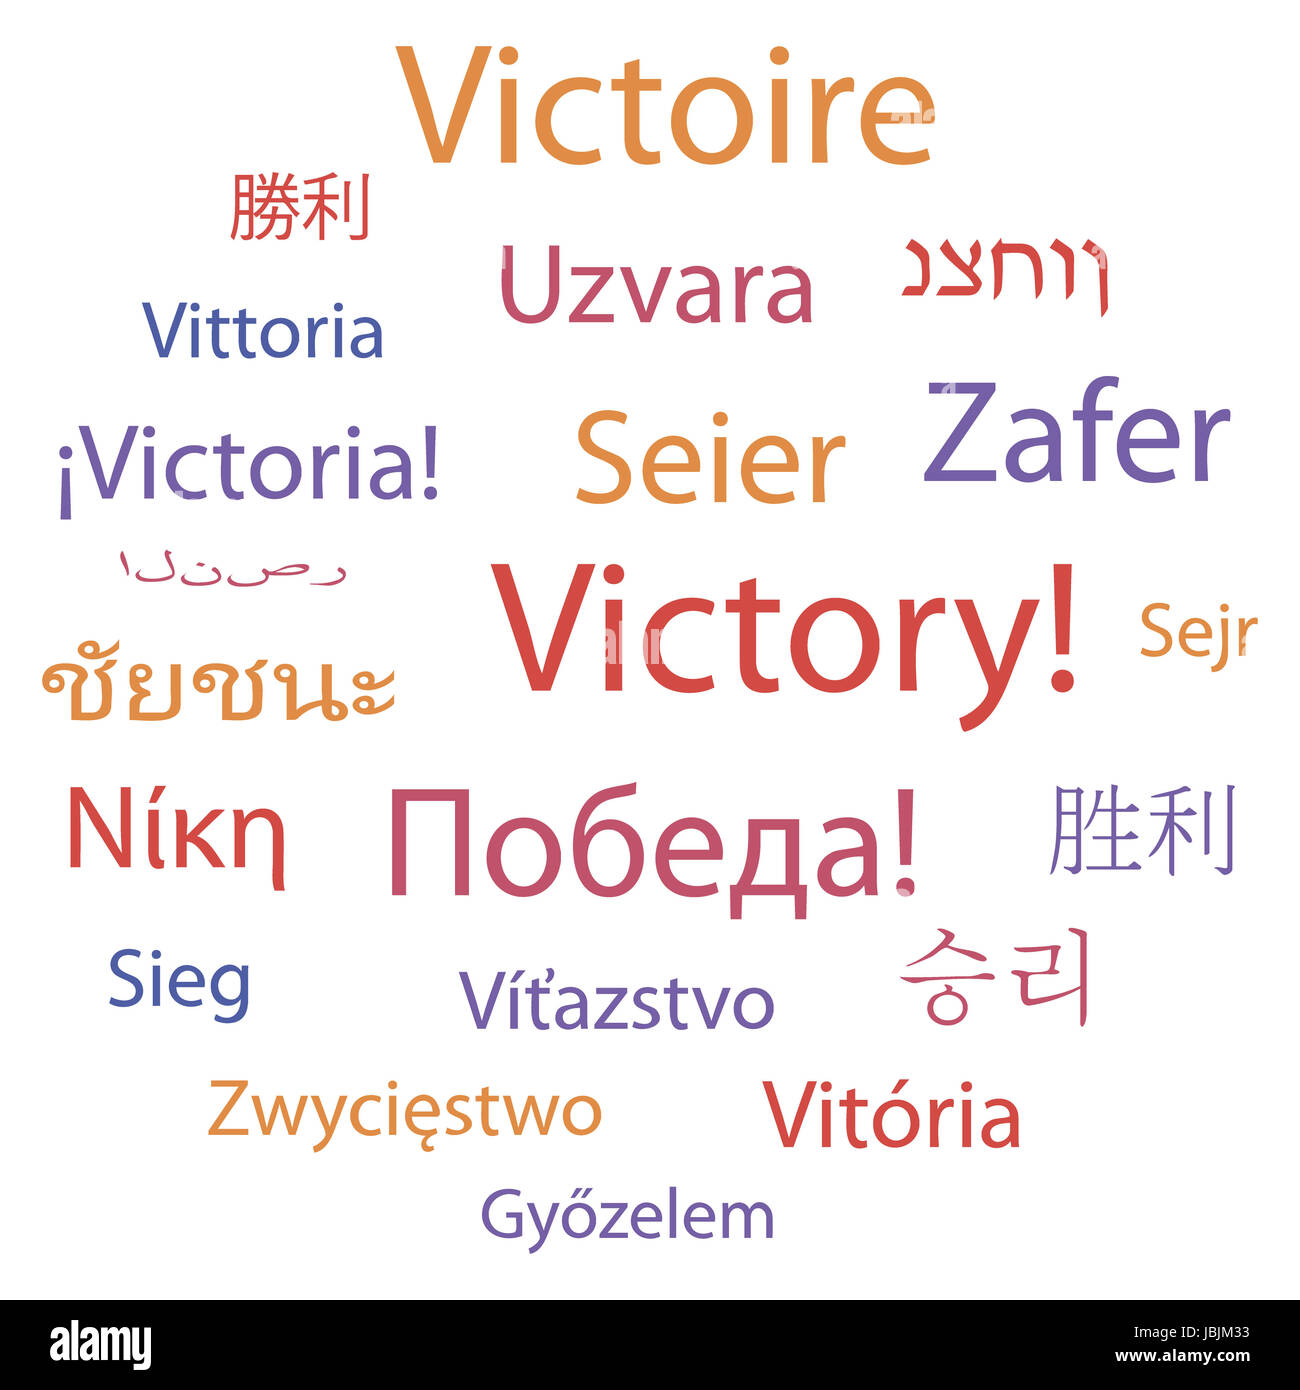 Tag cloud: 'Victory' in different languages. Vector illustration. - Stock Image